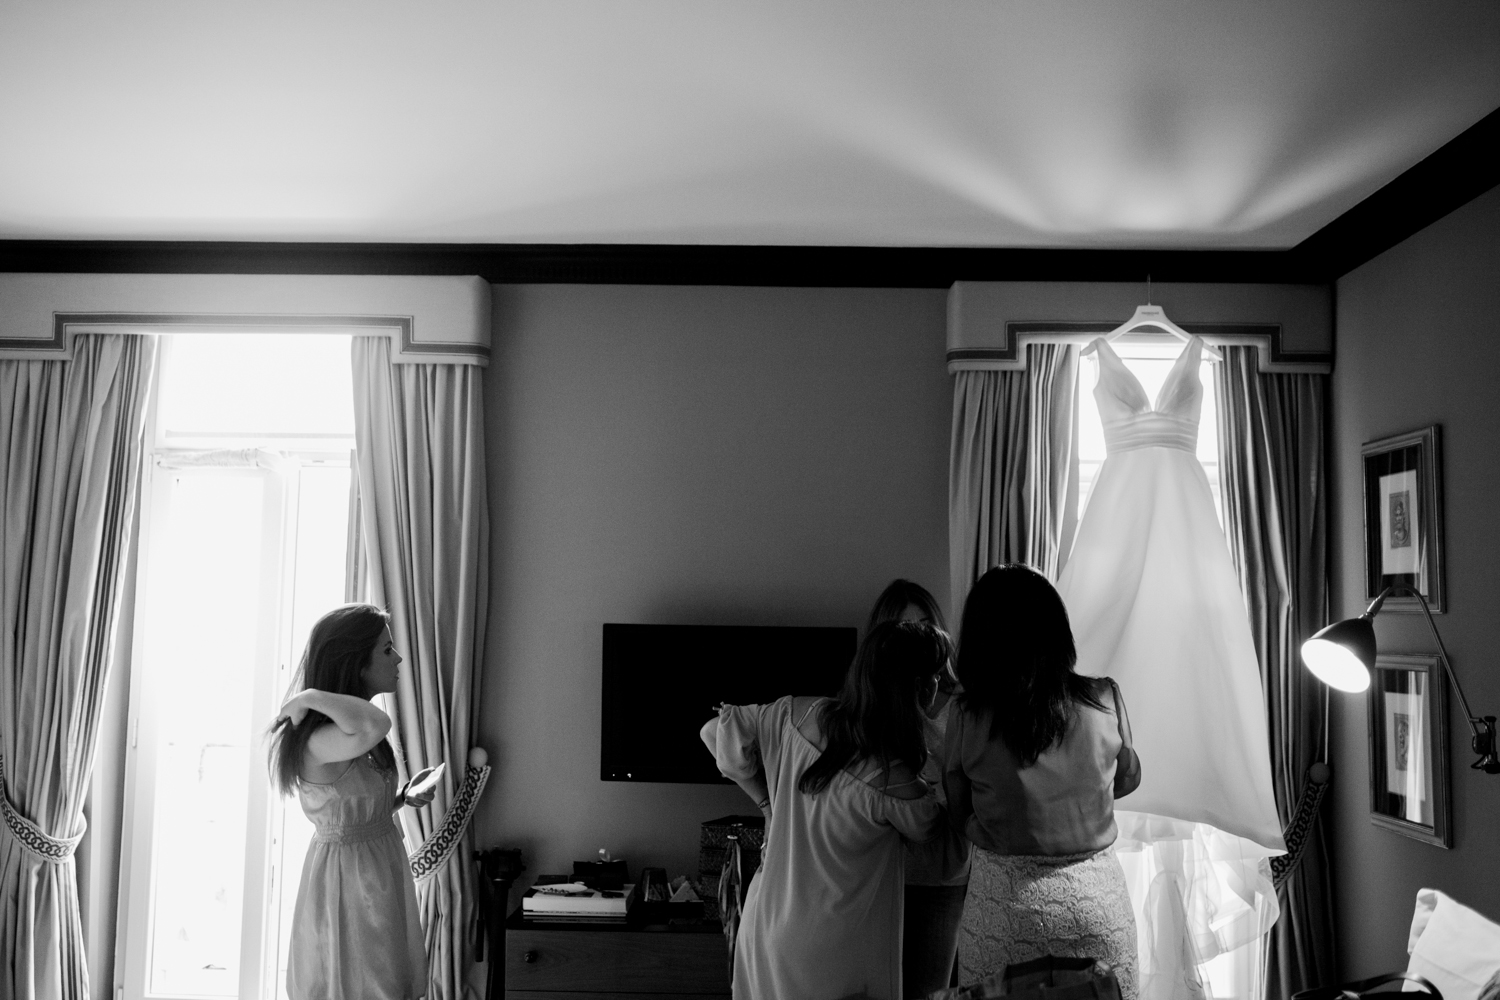 maria_rao_wedding_photographer_Portugal-14.jpg